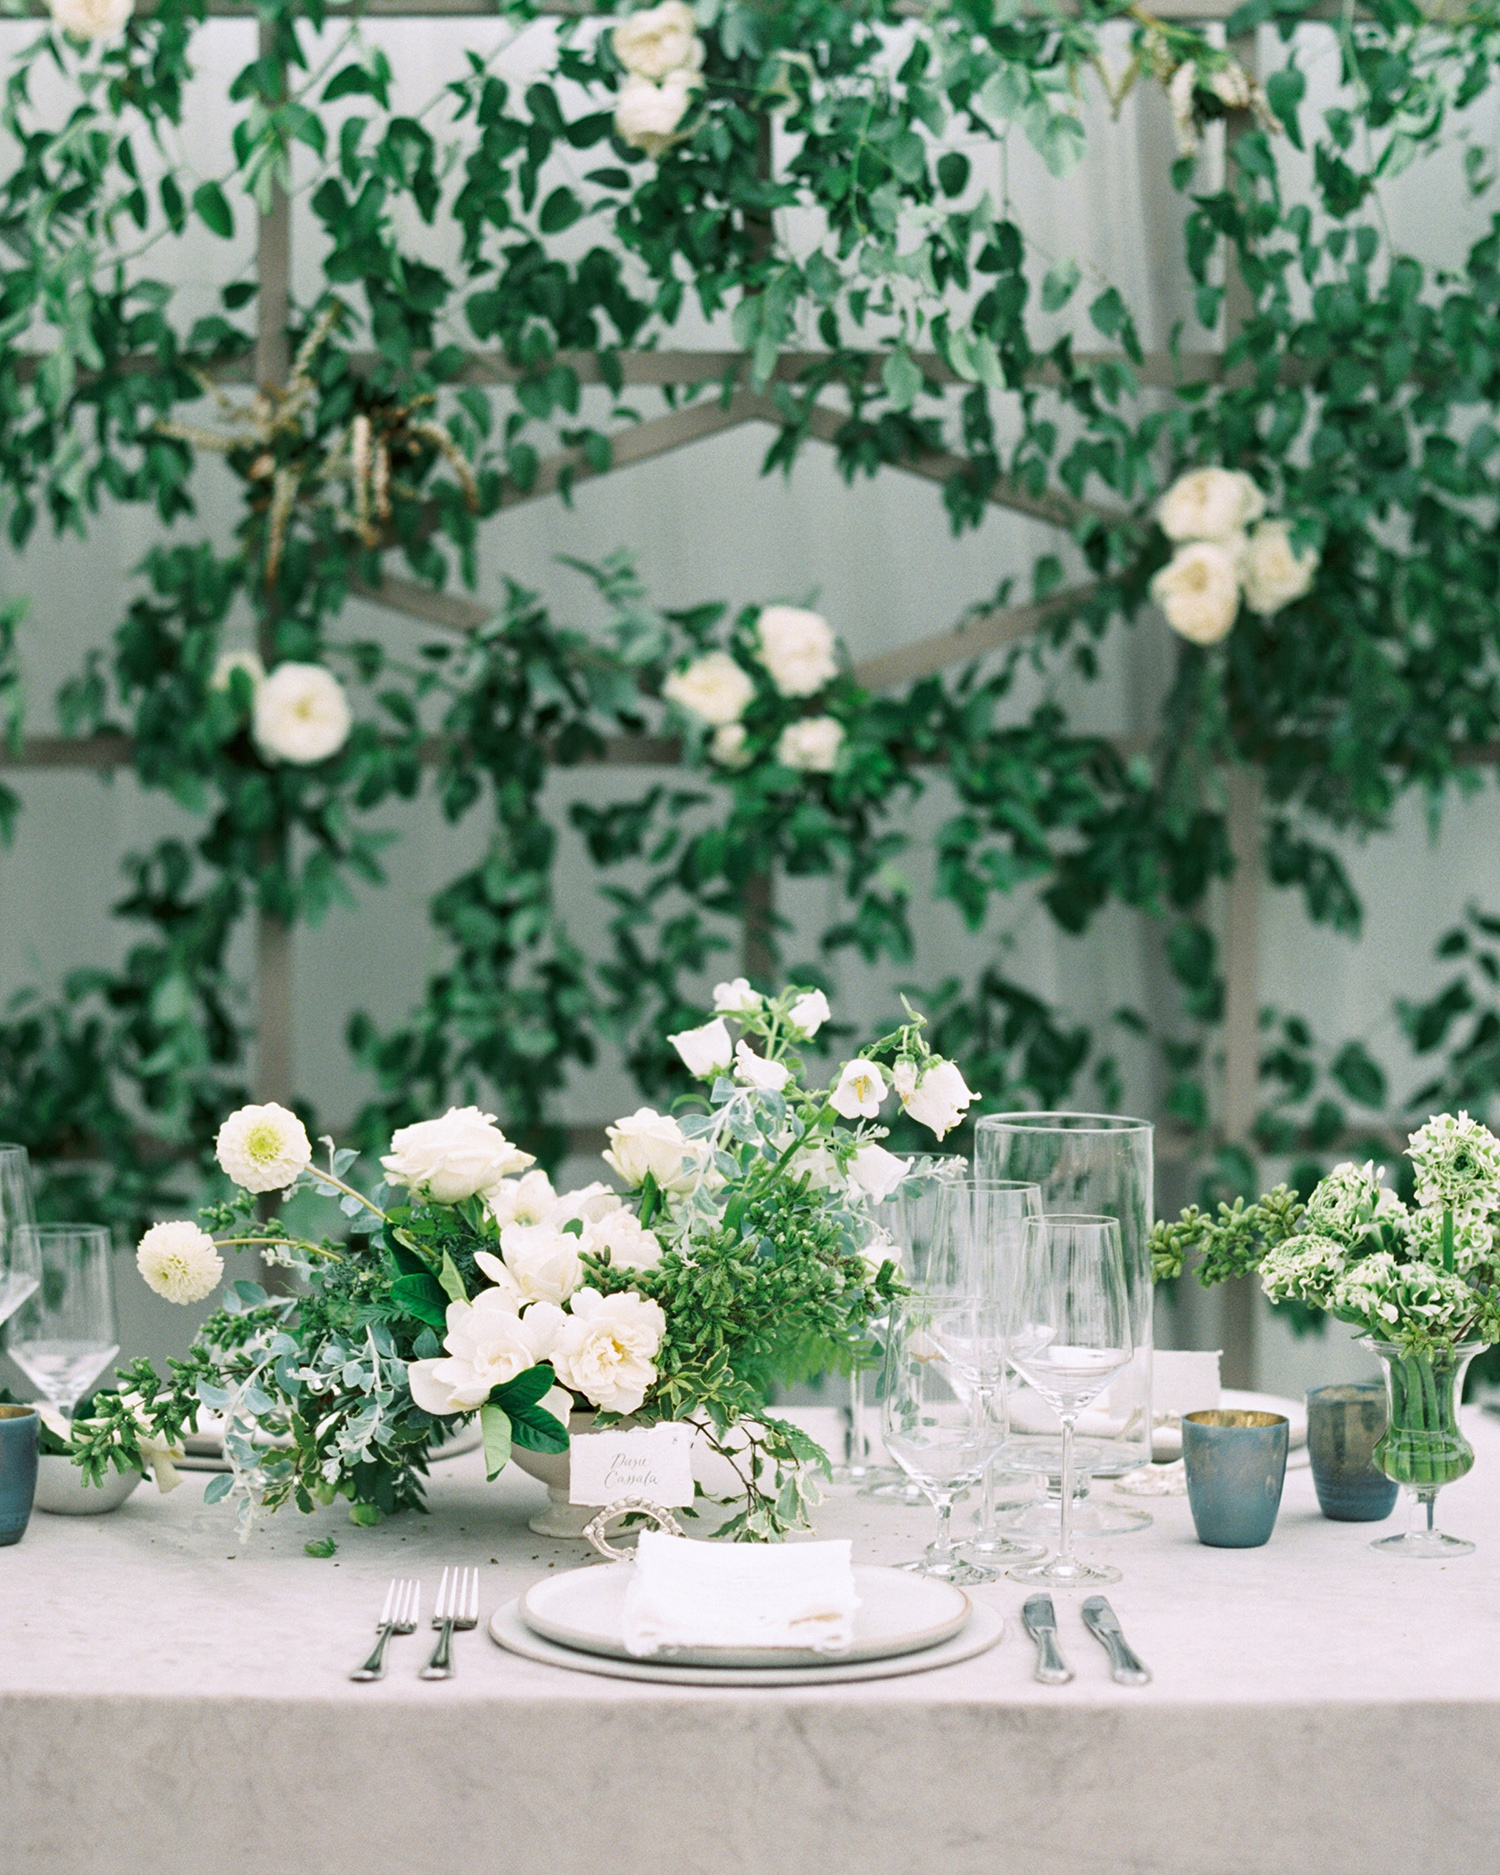 katie mike wedding lush green and floral centerpiece